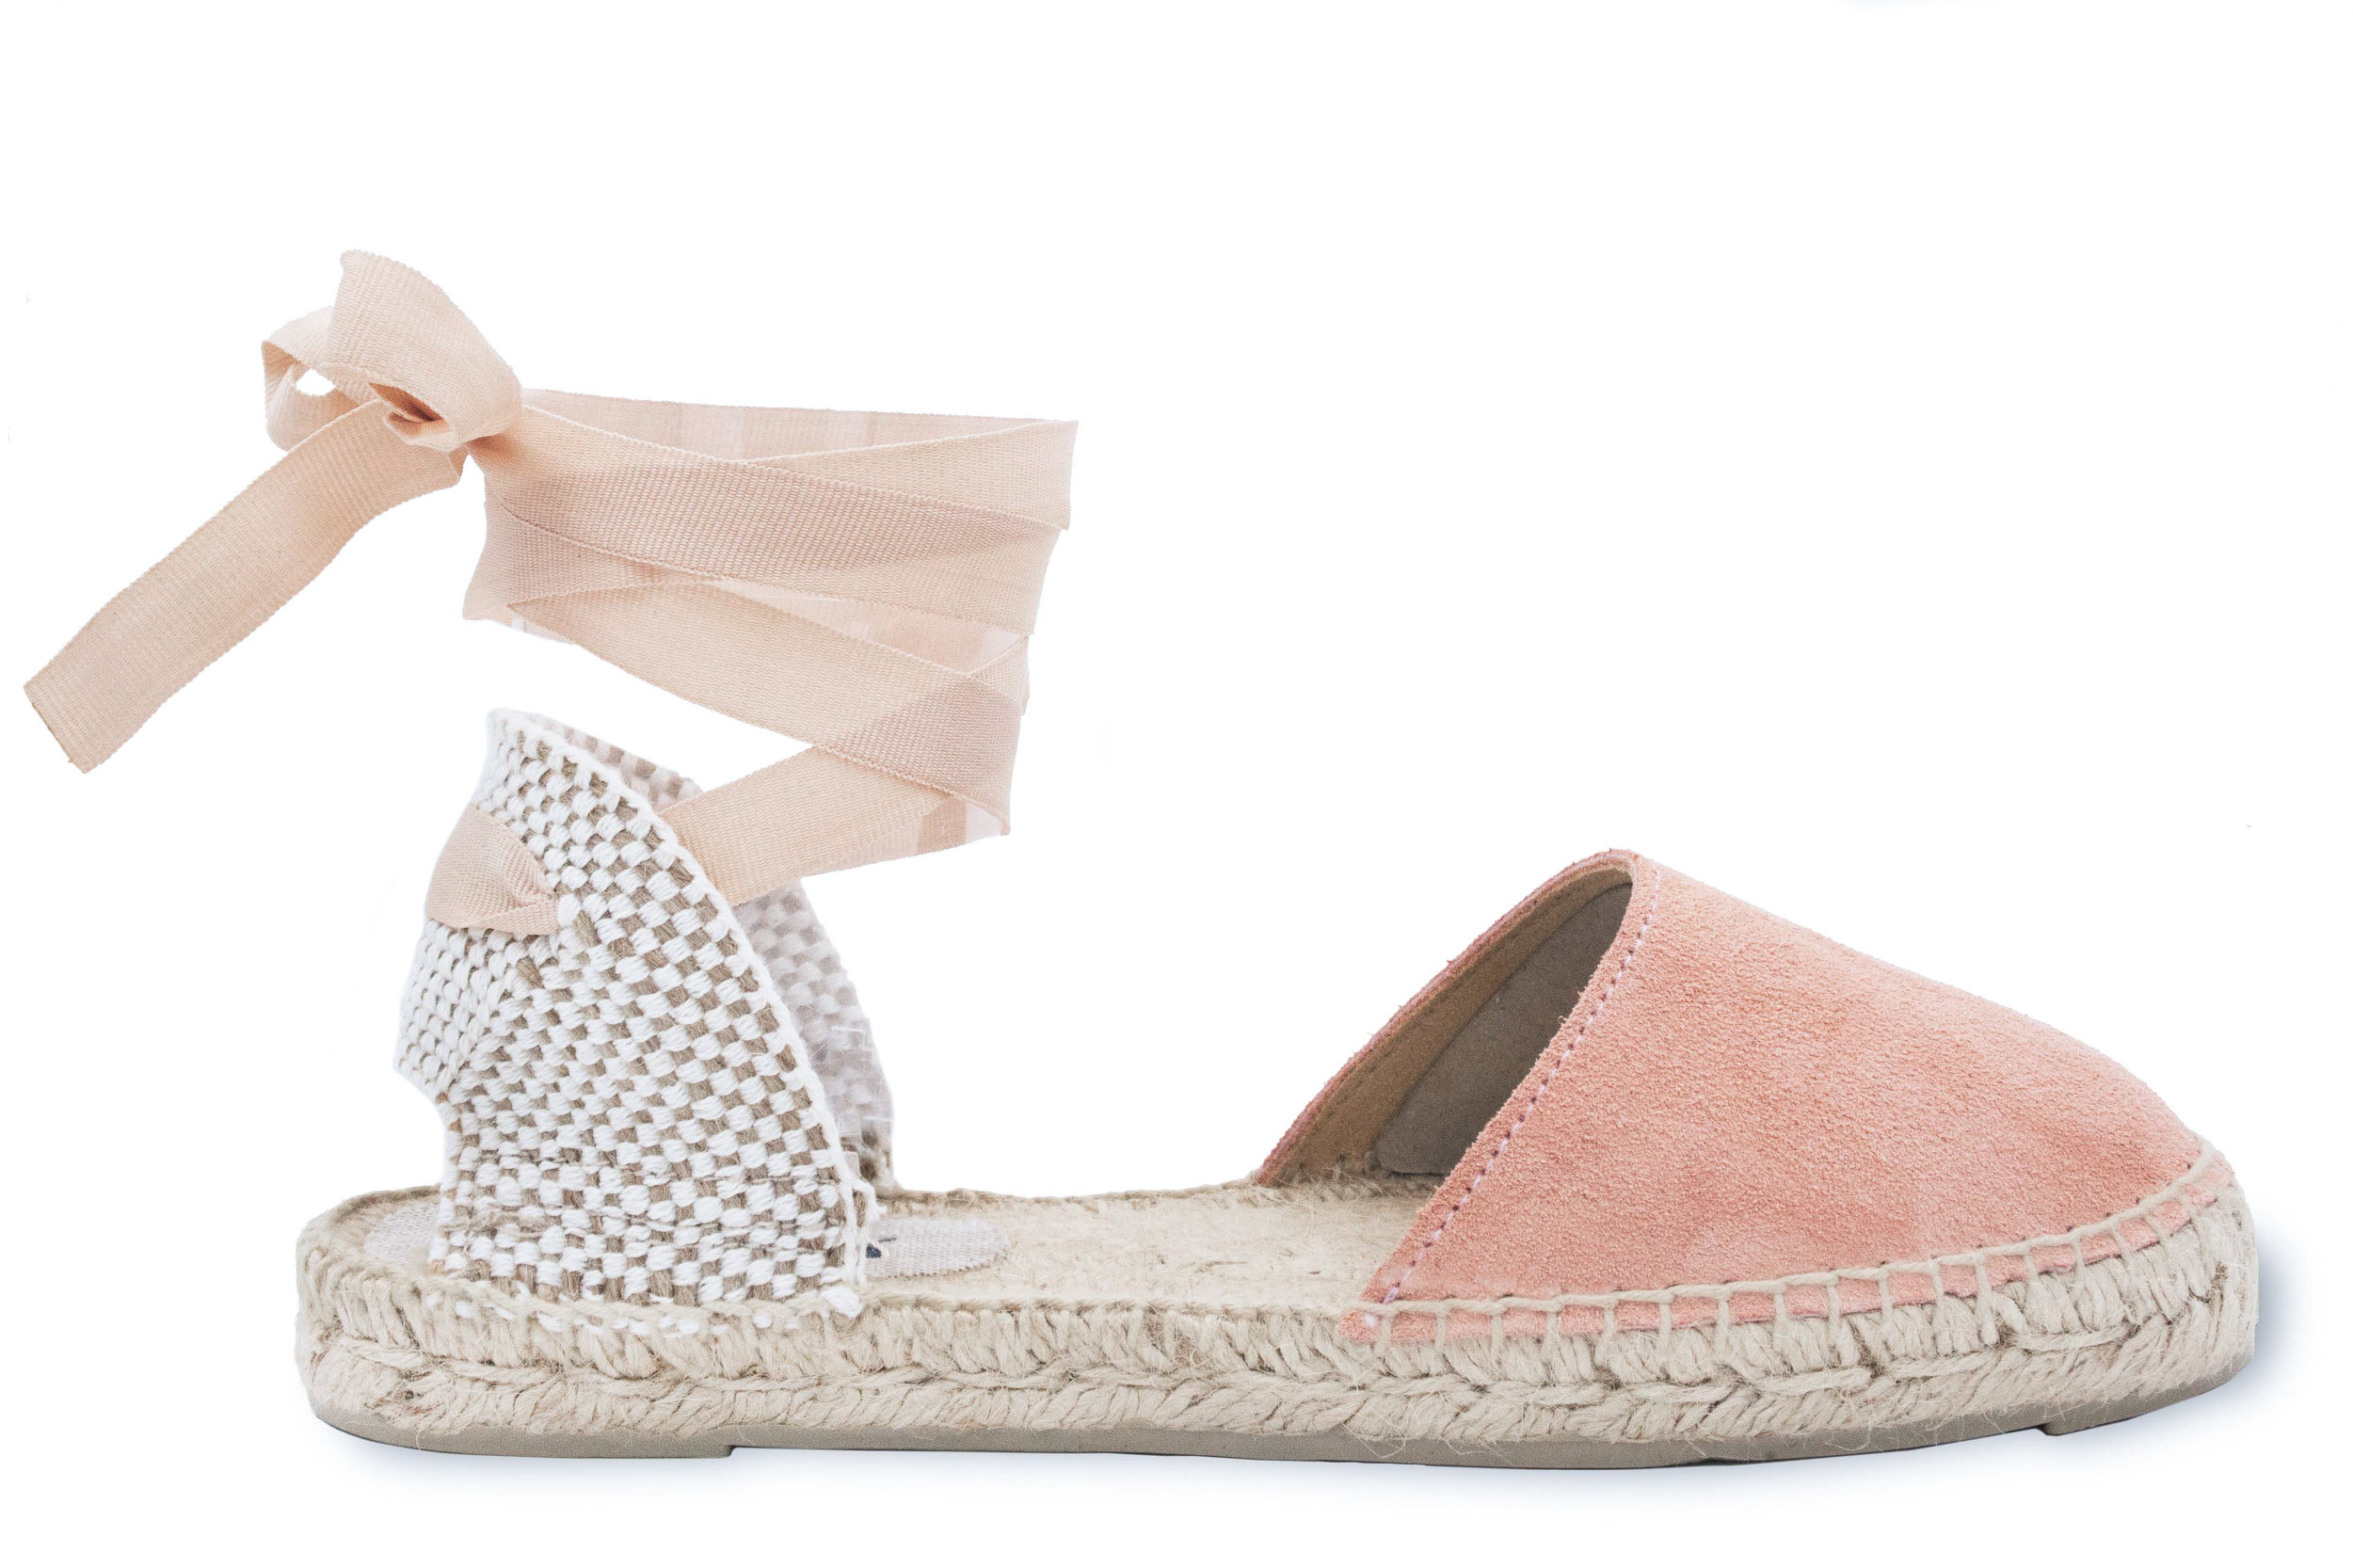 7ced169a449 Manebi espadrilles sandals hamptons pastel rose. new product tag